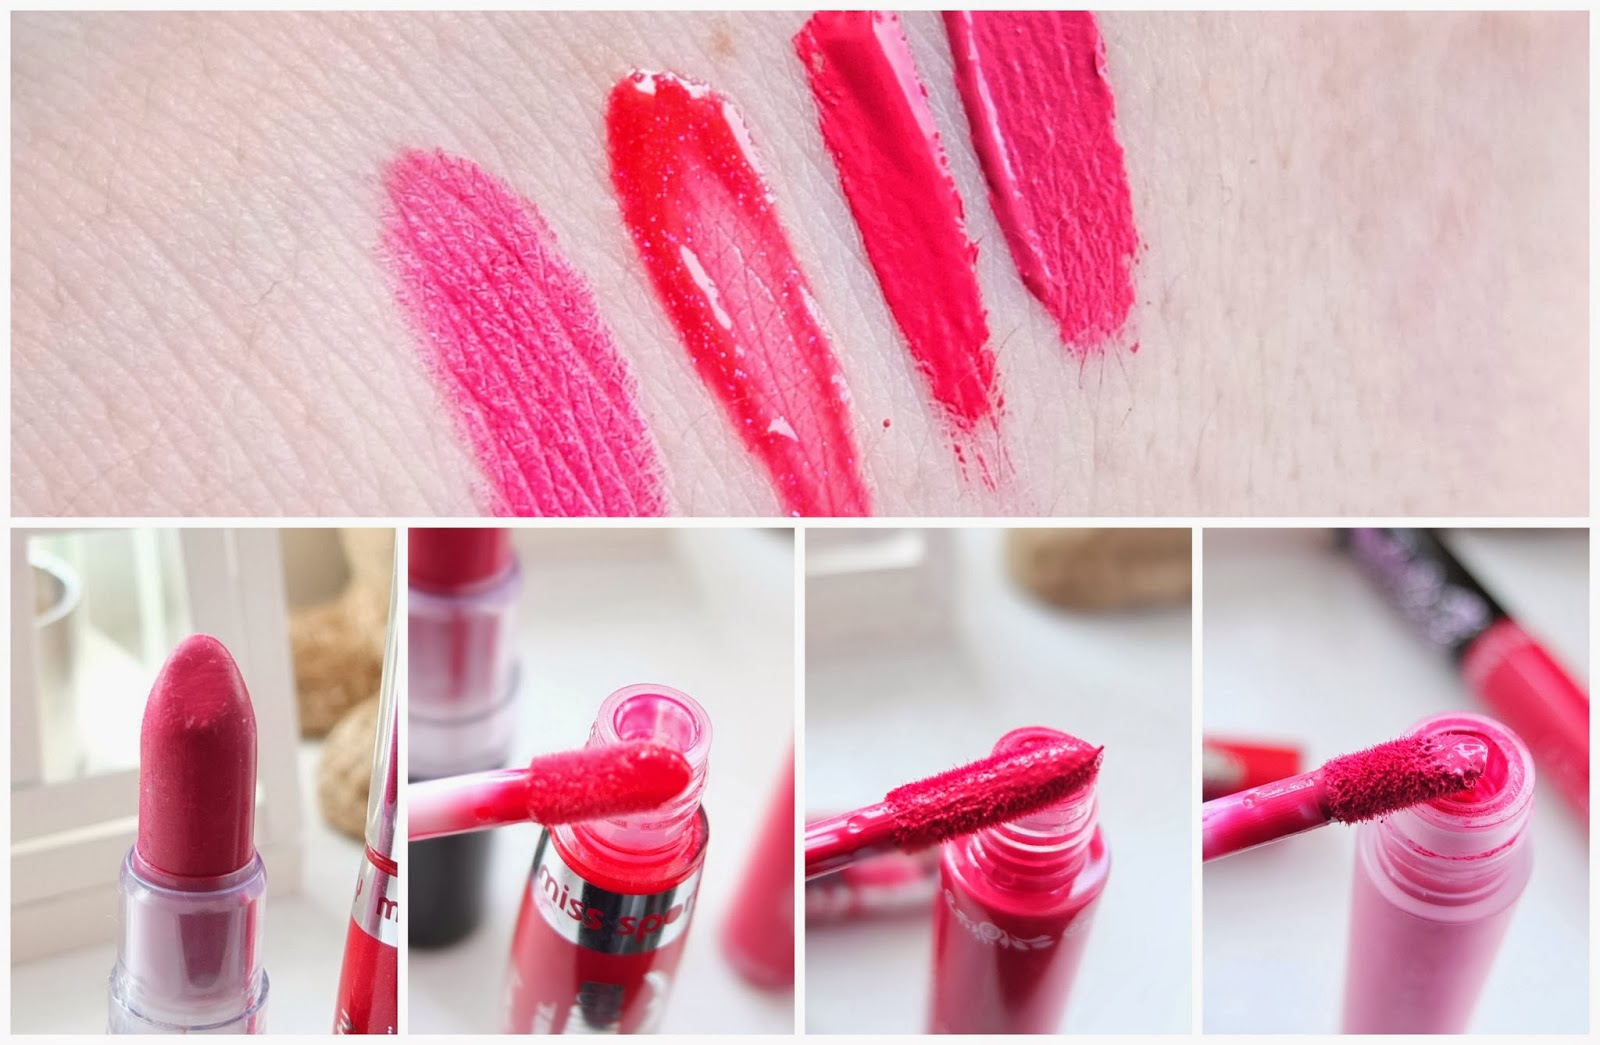 Reviews of the best budget high street lipsticks for bold lips costing under £5 on Hello Terri Lowe, British Beauty Blog.